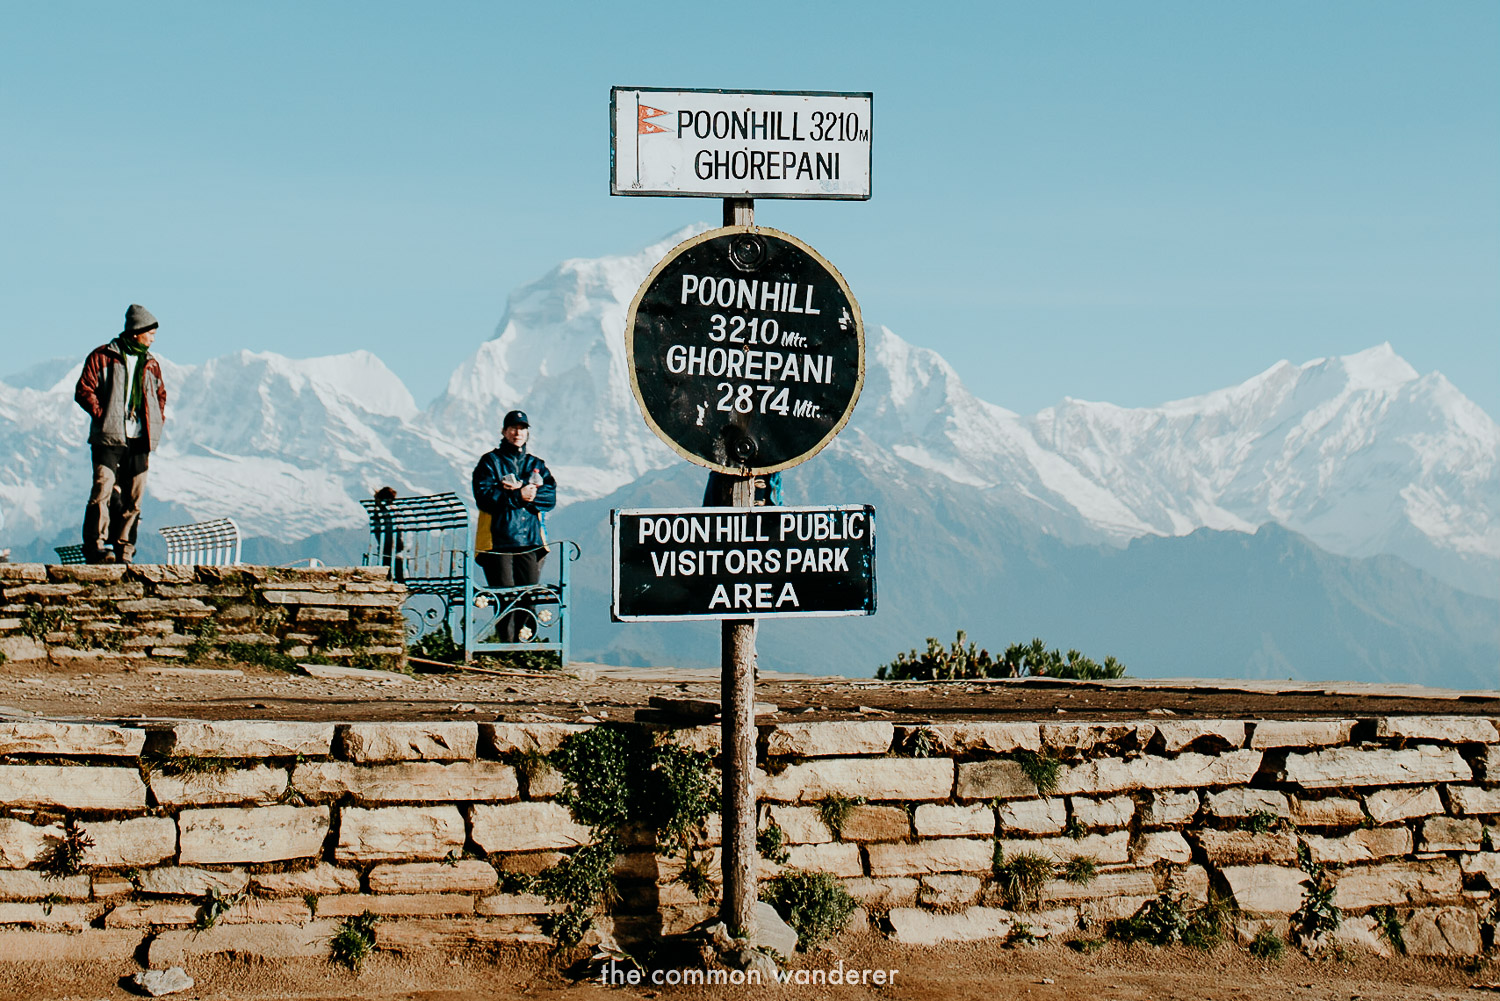 The summit of Poon Hill, Nepal